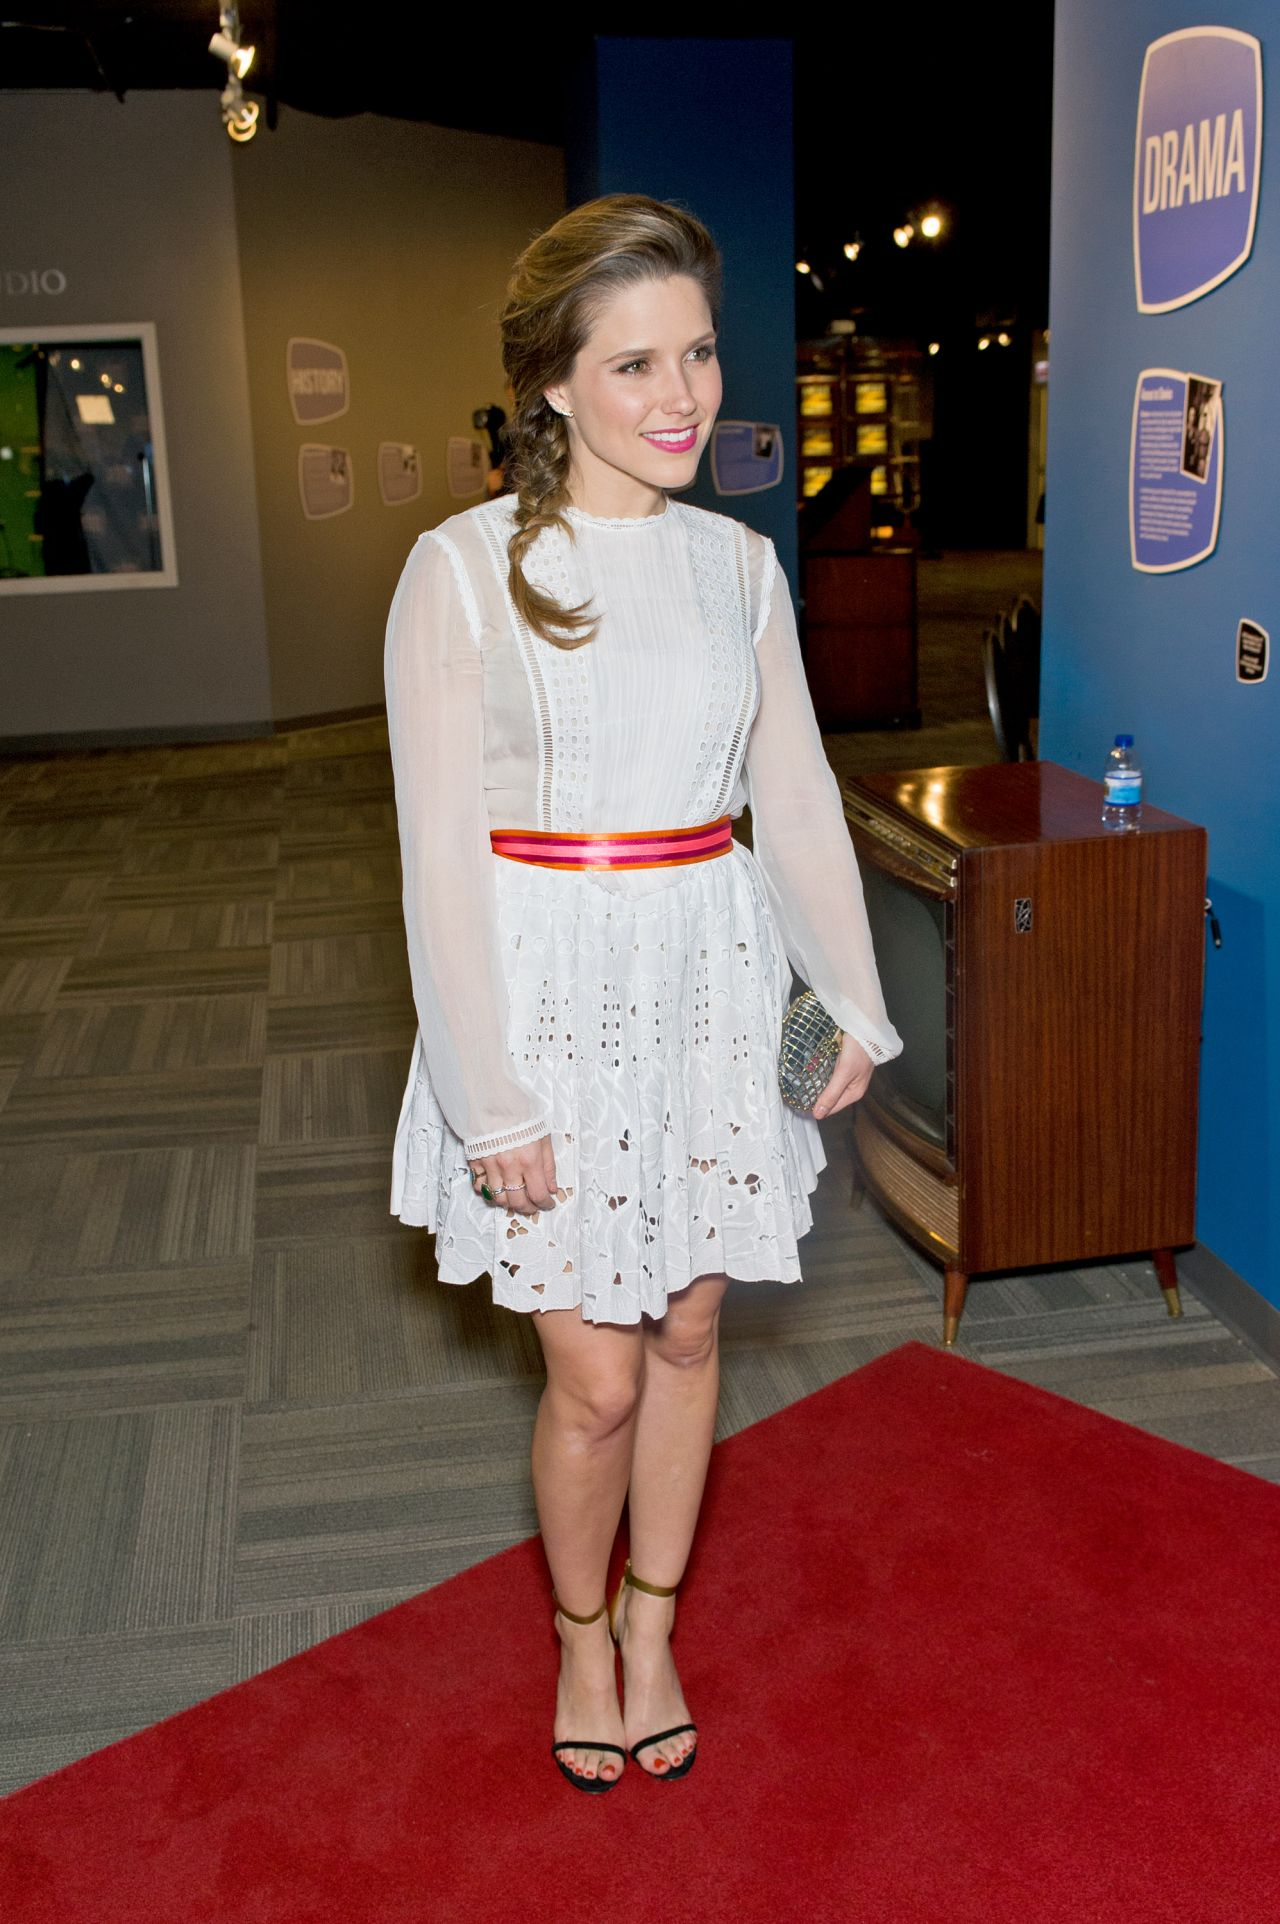 Sophia Bush Wearing Alberta Ferreti Dress Chicago Fire